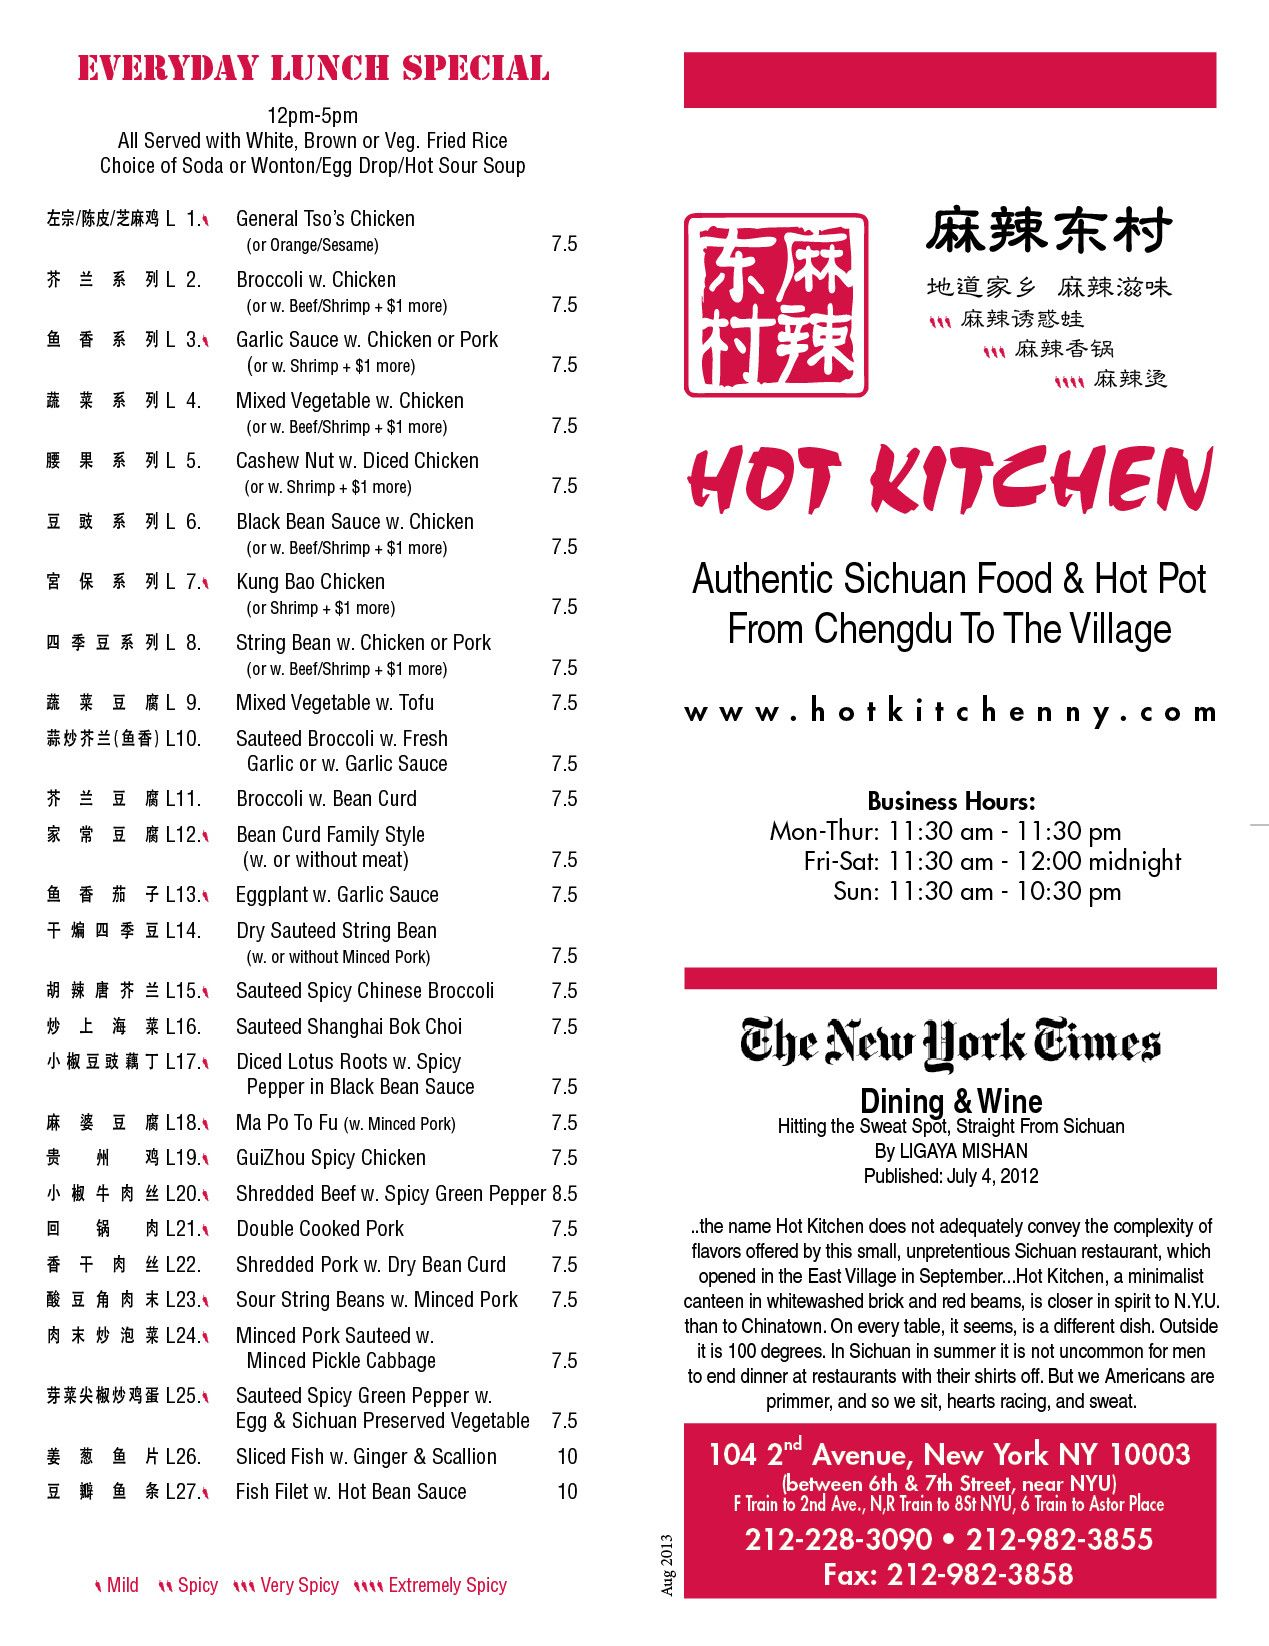 Favorites at HOT KITCHEN 1. Ma La Tang (Numbing Spicy Soup) 2. Frog ...